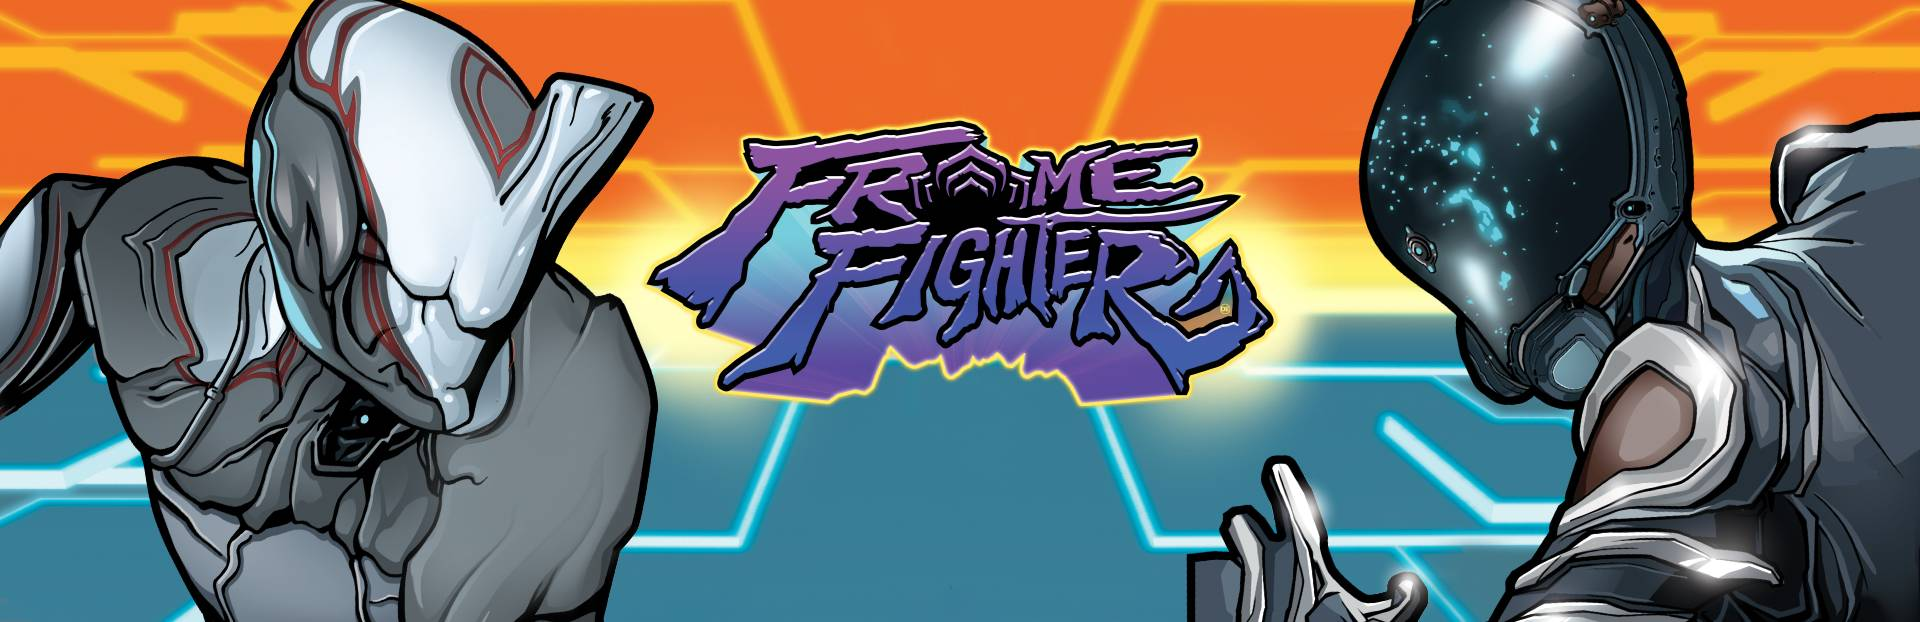 Frame Fighter Banner